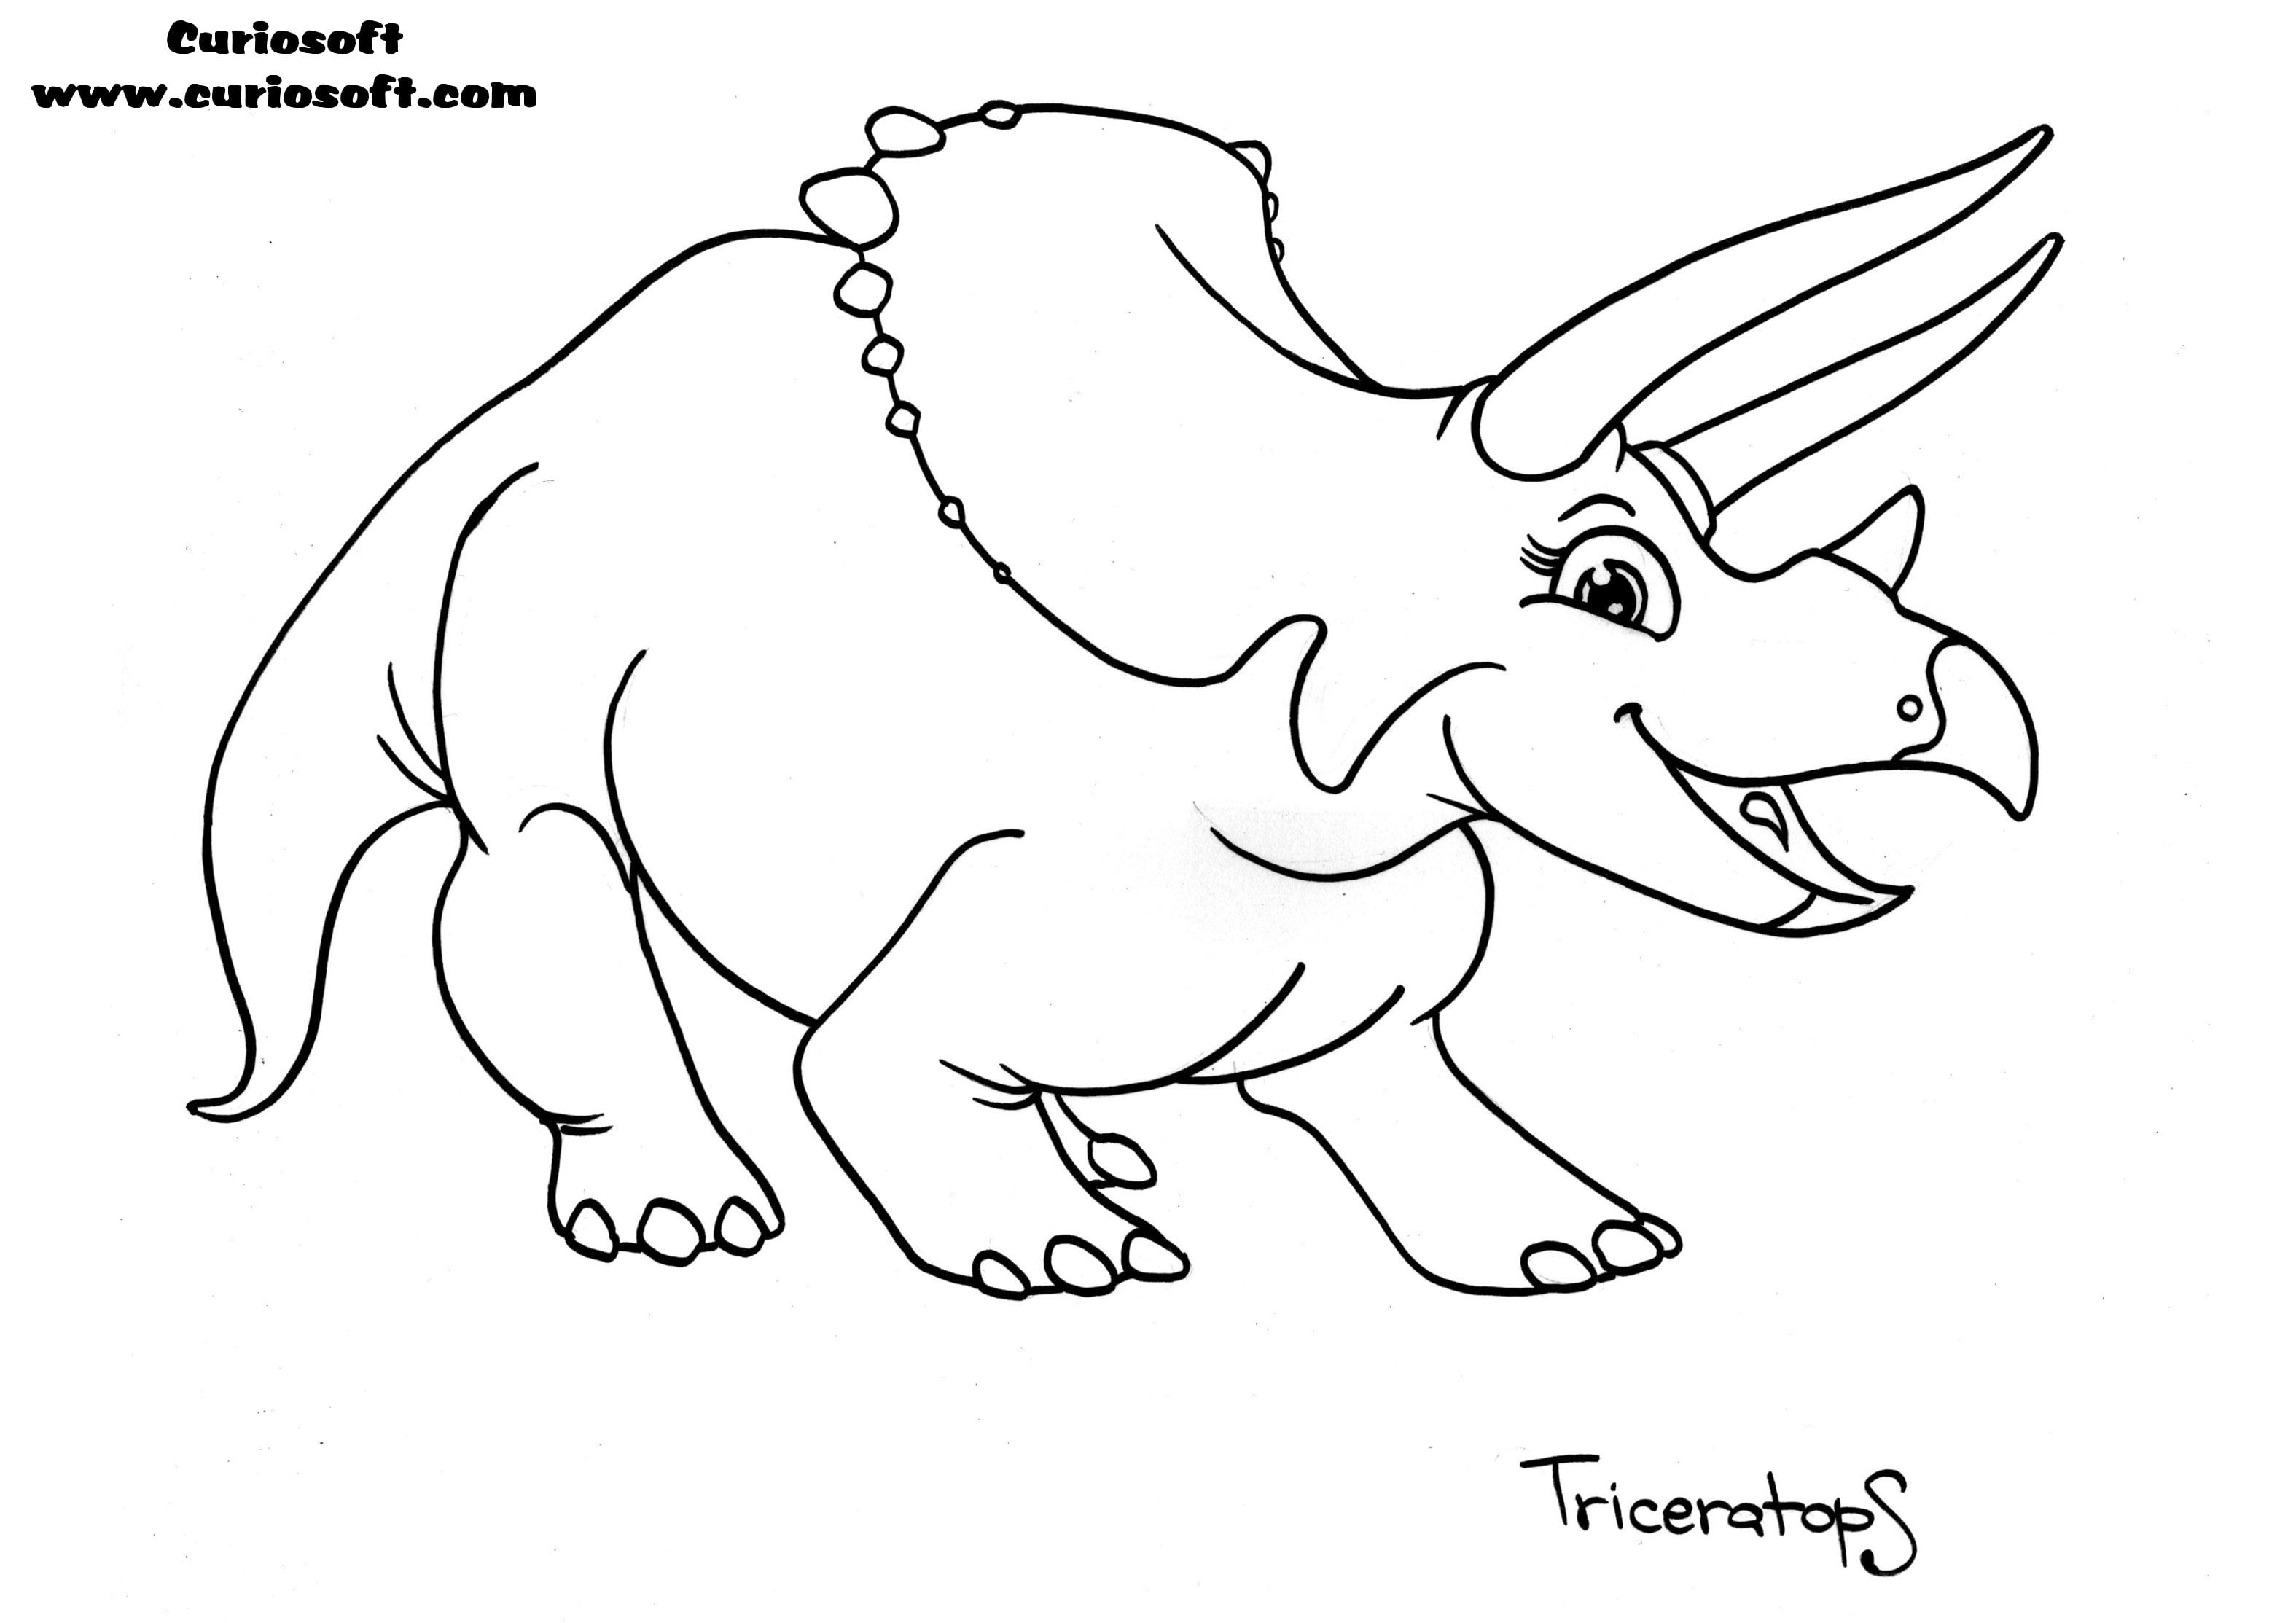 Sturdy Triceratops Coloring Page With Free Printable  234